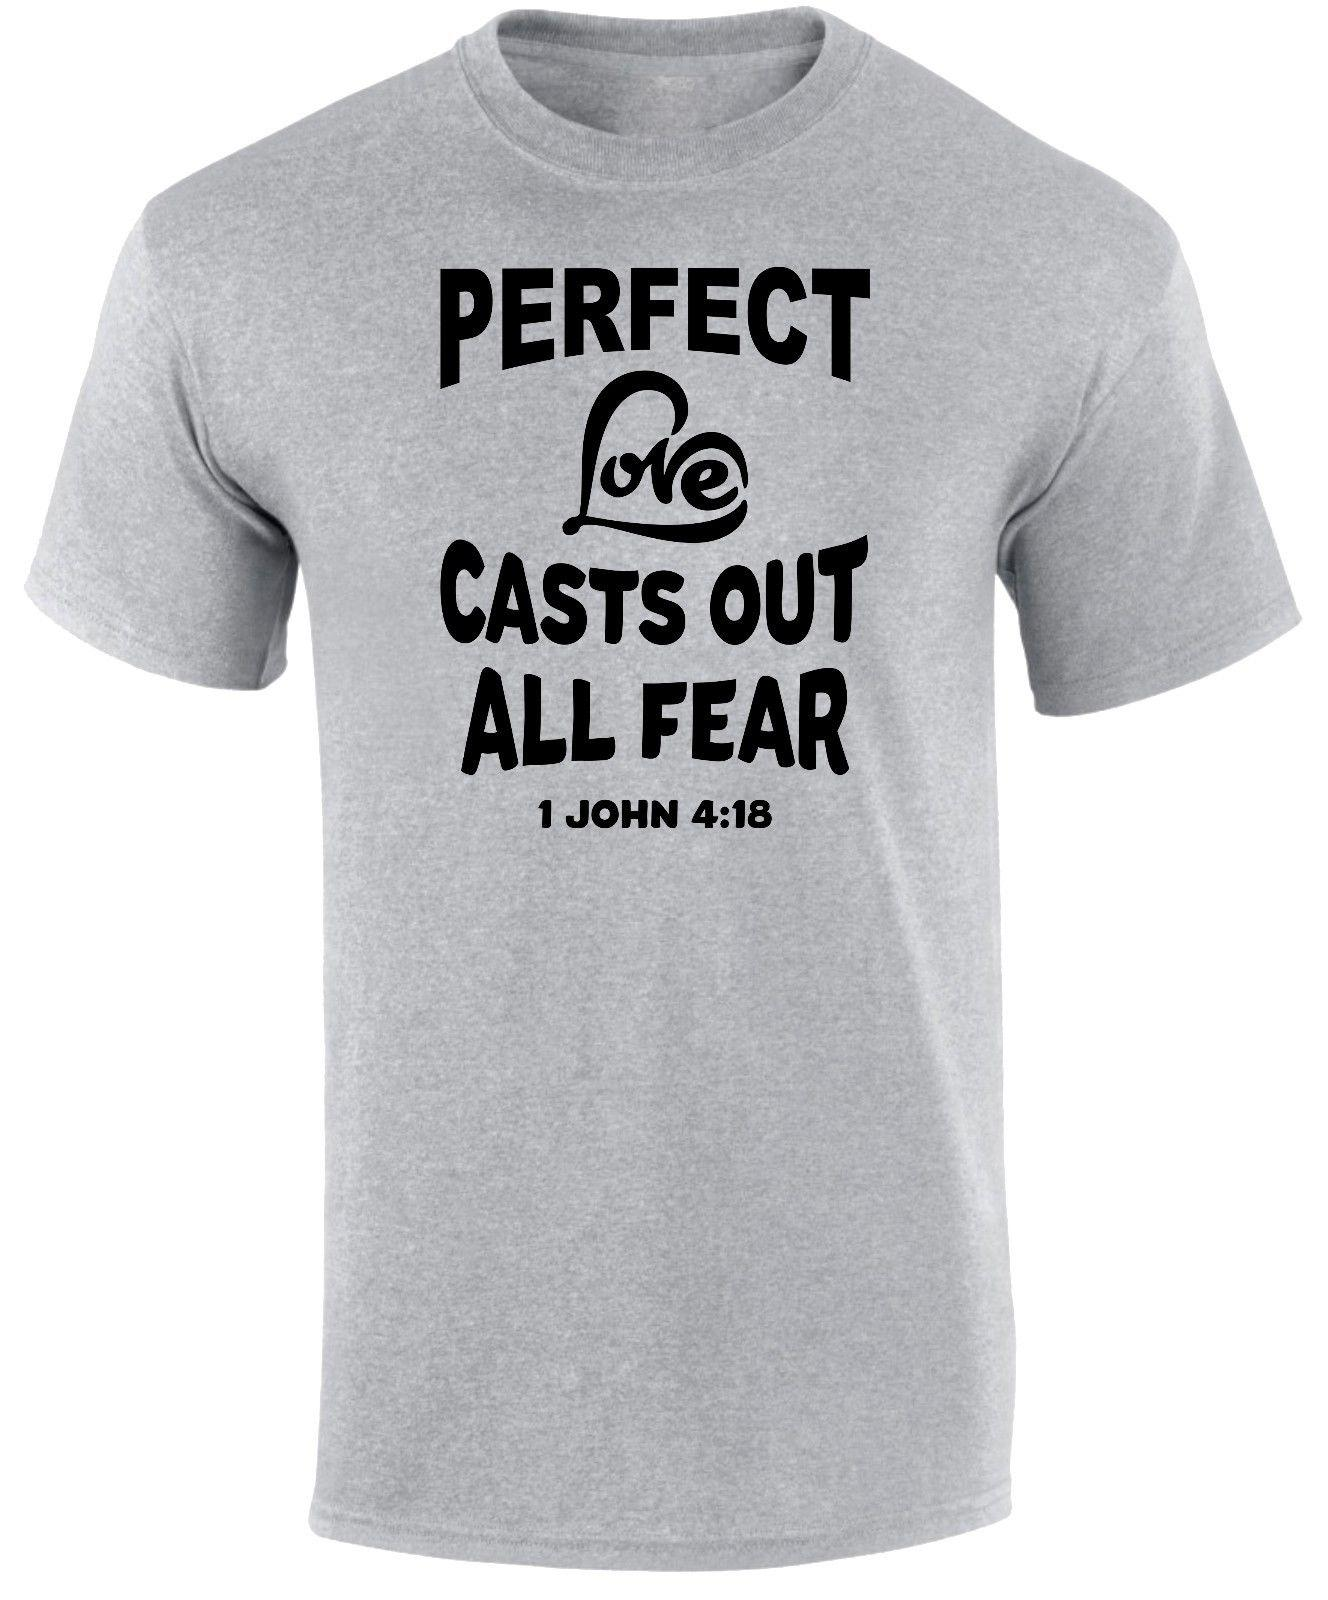 Details zu Perfect Love Casts Out All Fear Bible Verse Jesus Heart  Christian Men s T Shirt Funny free shipping Unisex tee